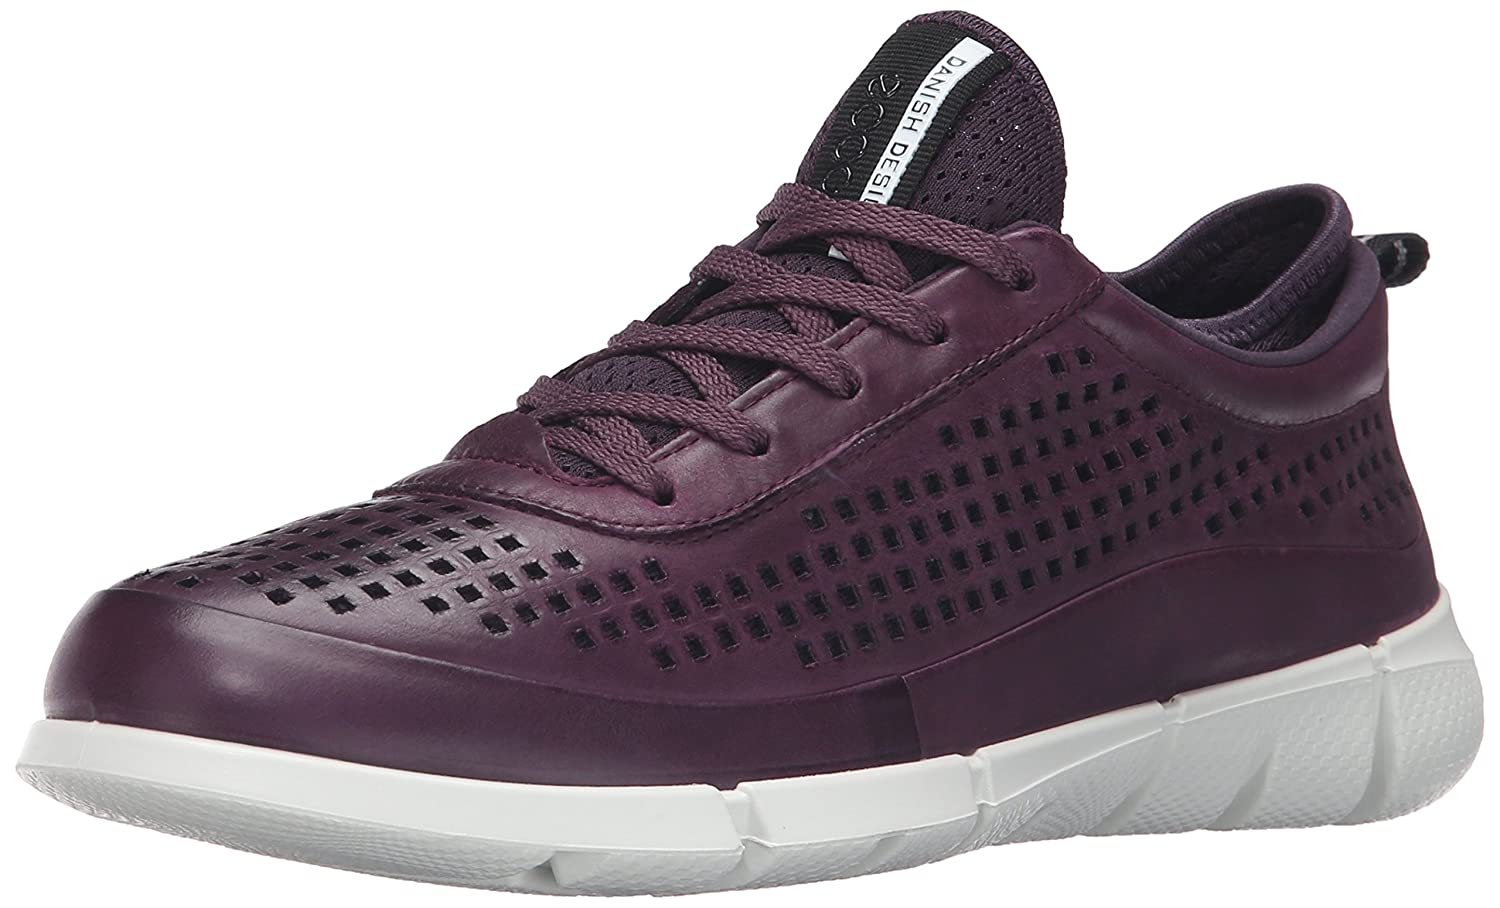 ECCO Women's Intrinsic Sneaker Fashion Sneaker B0163GALRQ 42 EU/11-11.5 M US|Mauve